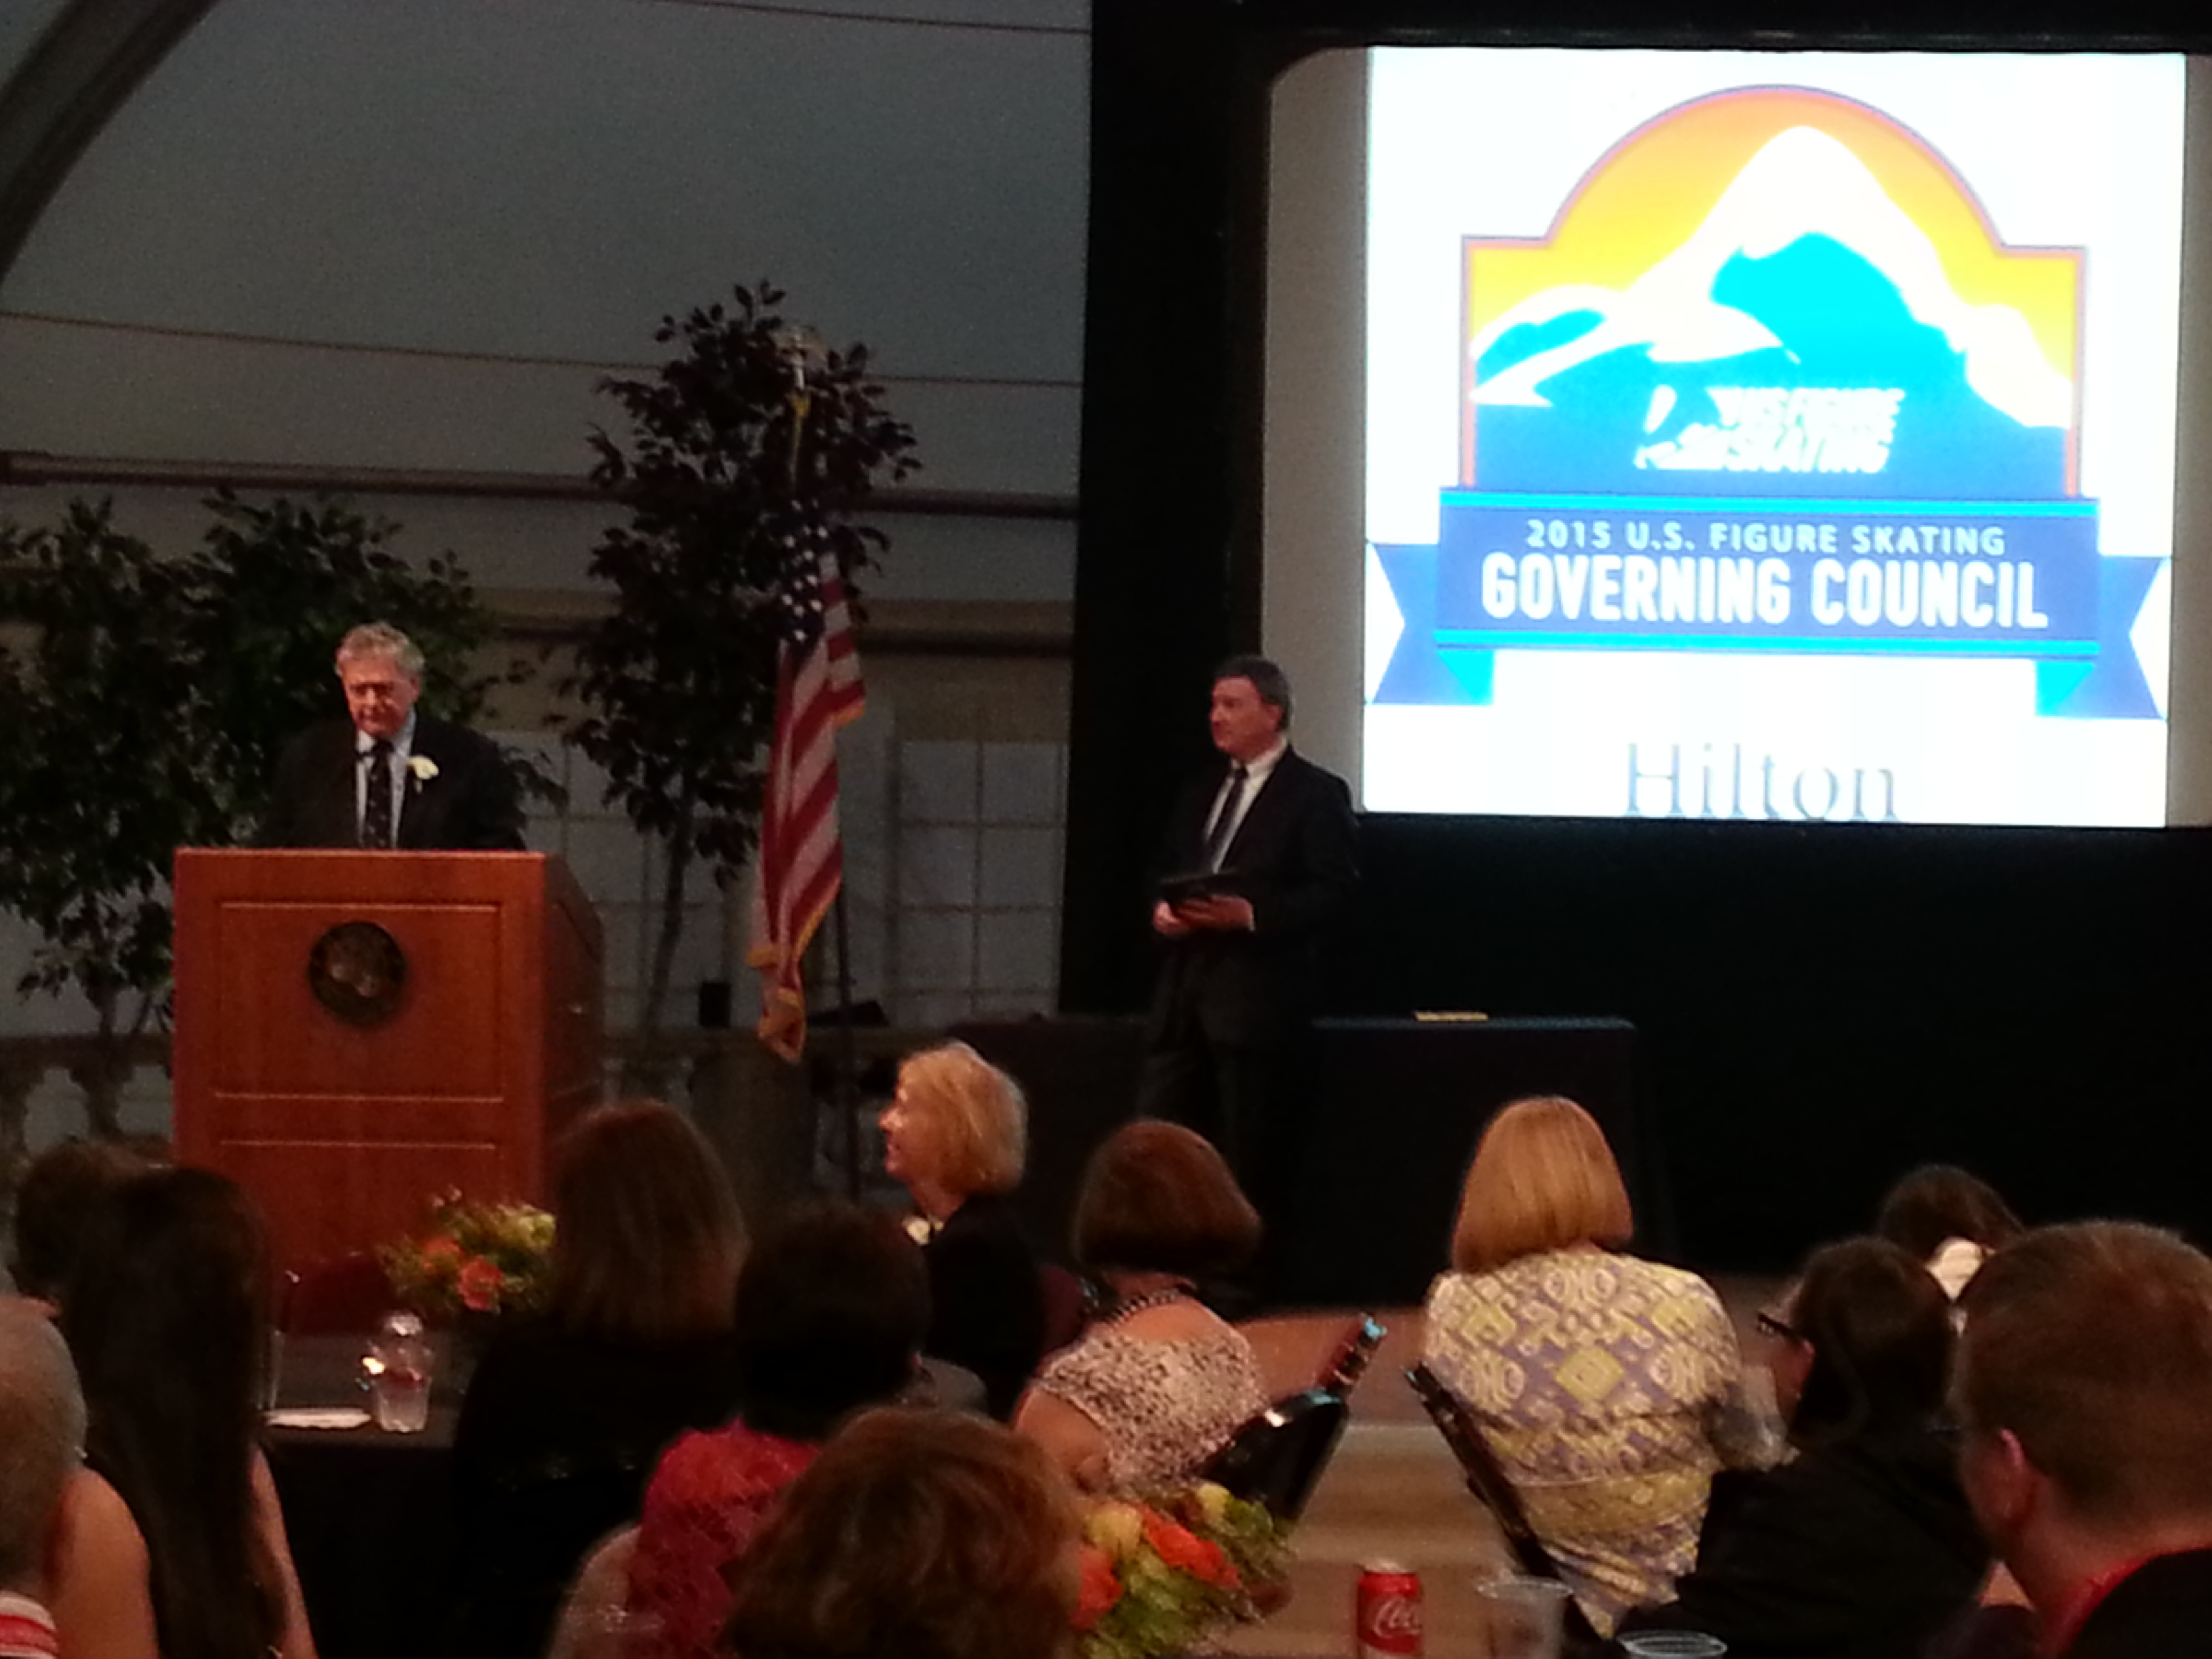 TFSC members recognized at 2015 Governing Council